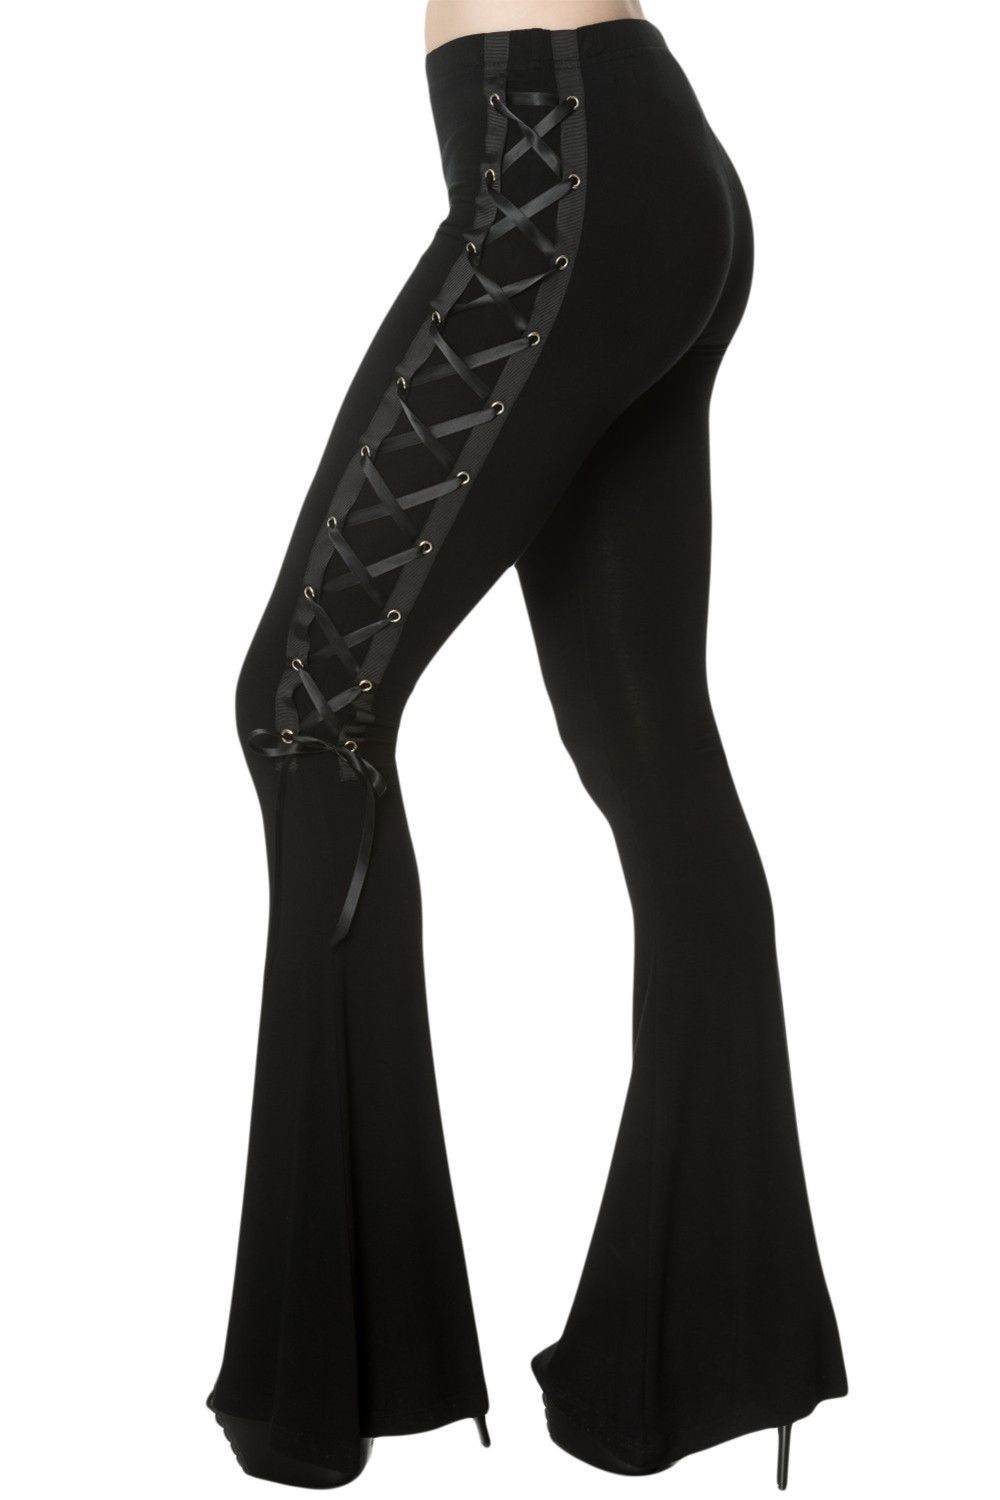 4c309952bf945 Gothic Punk Rave style flared Bell Bottom Pants made from stretch legging  type fabric. Elasticated waistband. Flared from the approximate knee down  to the ...